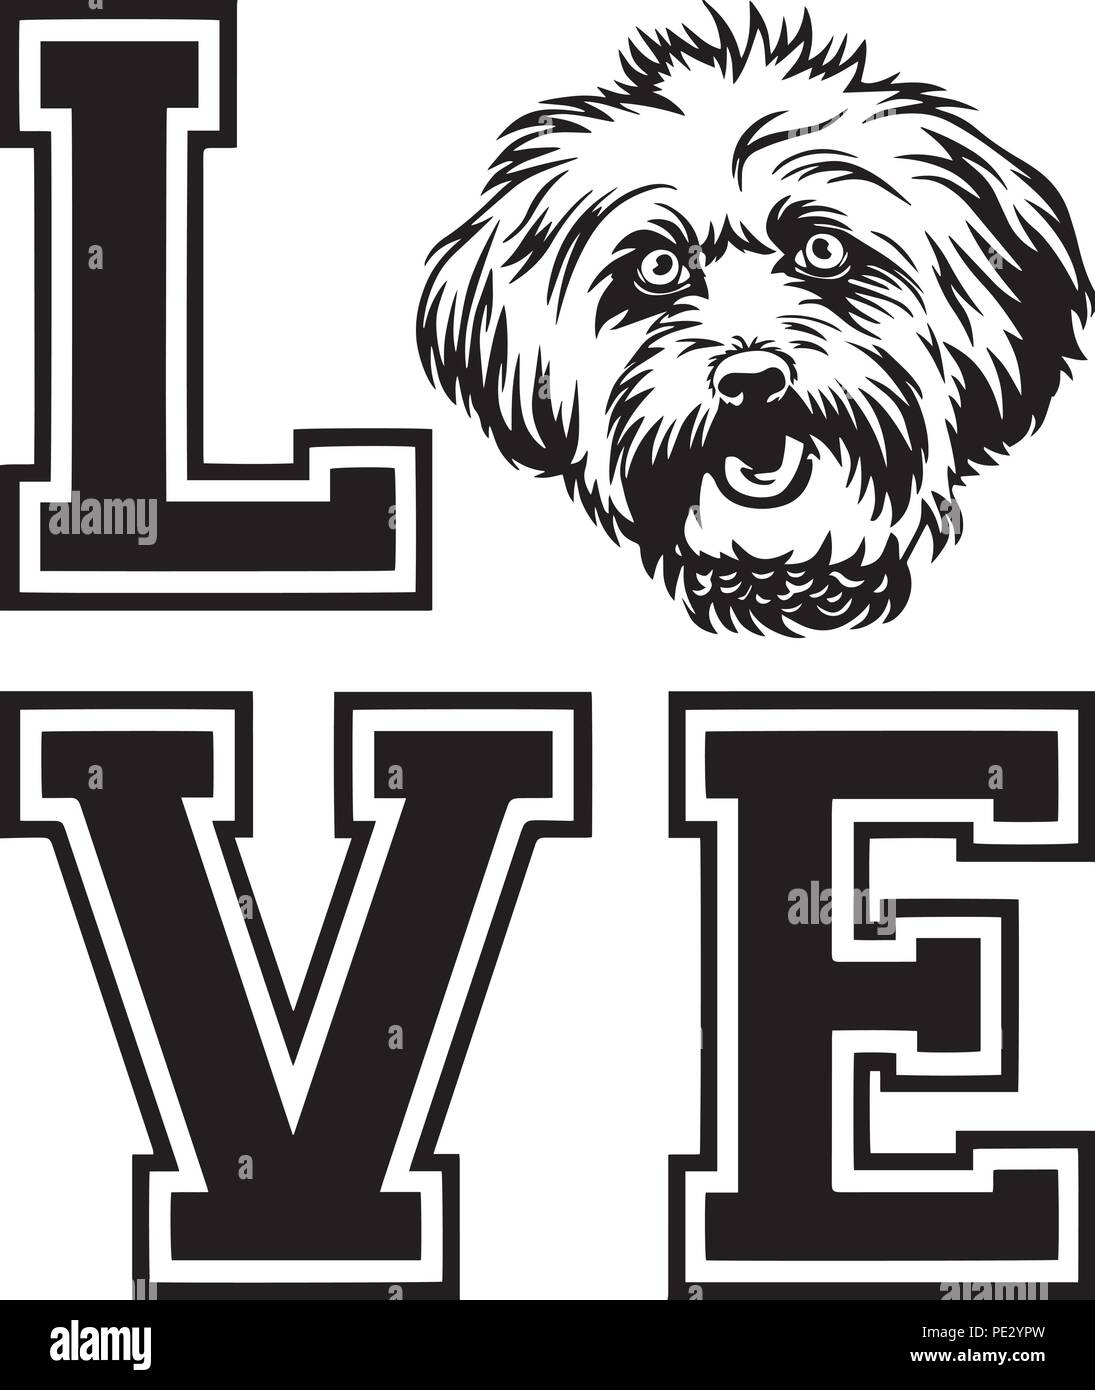 Lhasa Apso Dog Breed Pet Puppy Isolated Head Face Stock Vector